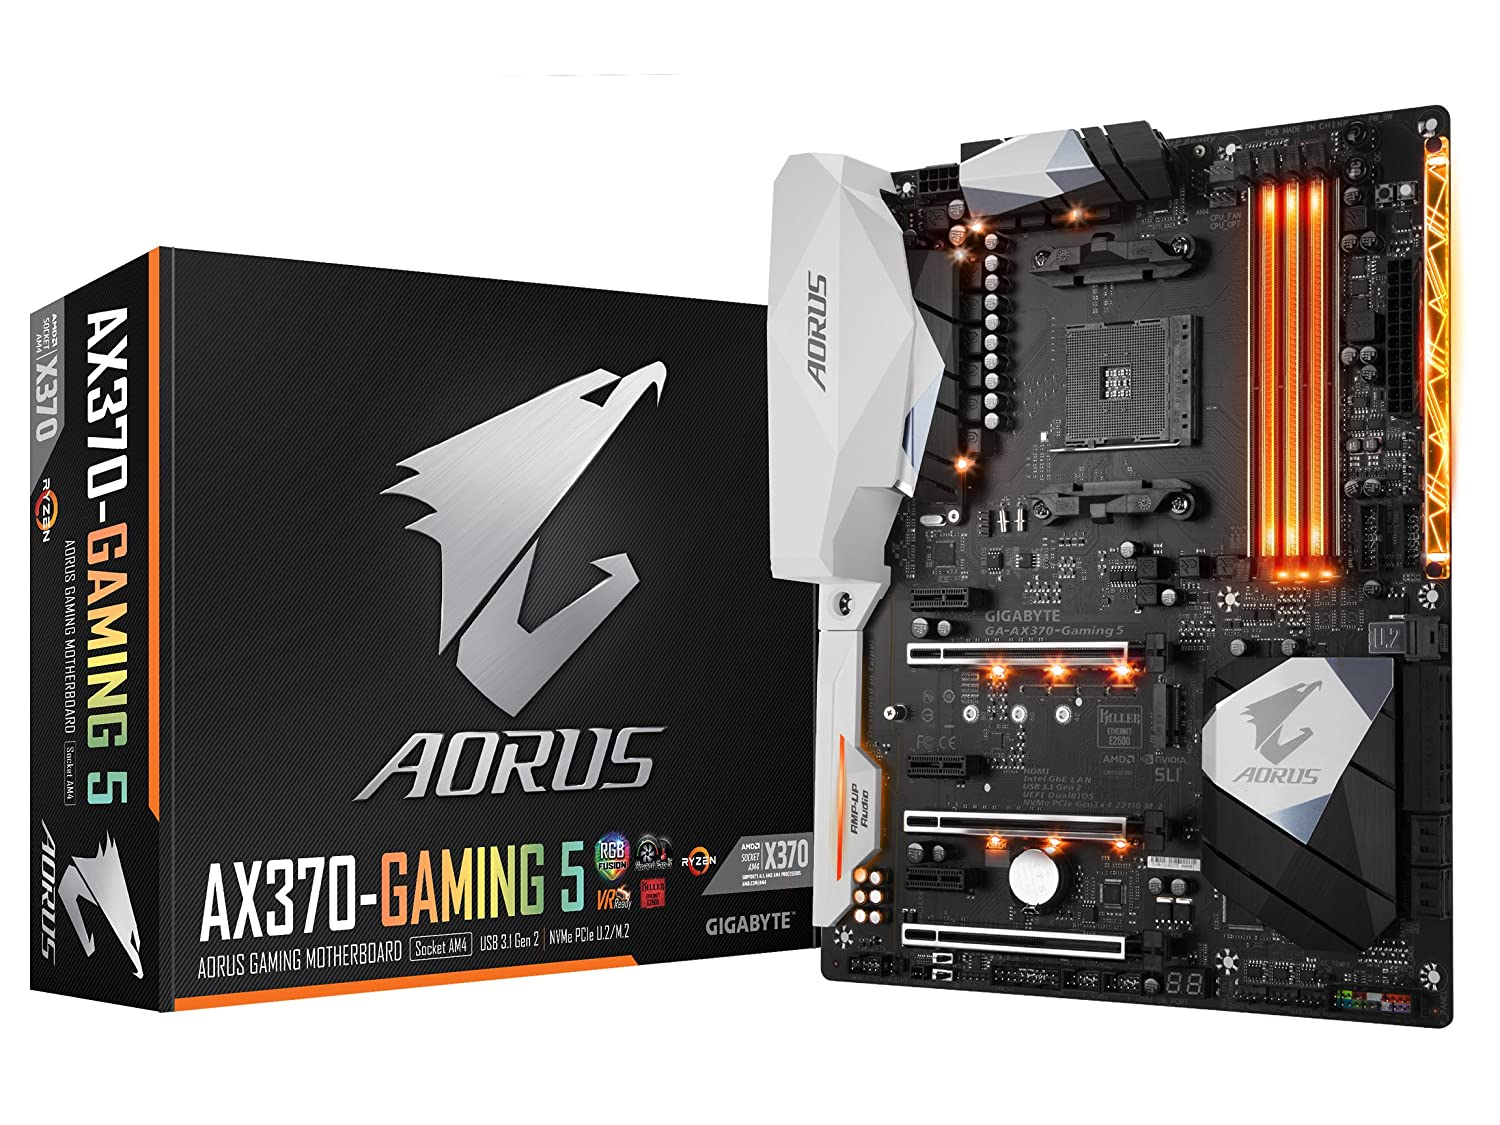 Gigabyte Aorus AX370 - Gaming 5 Review